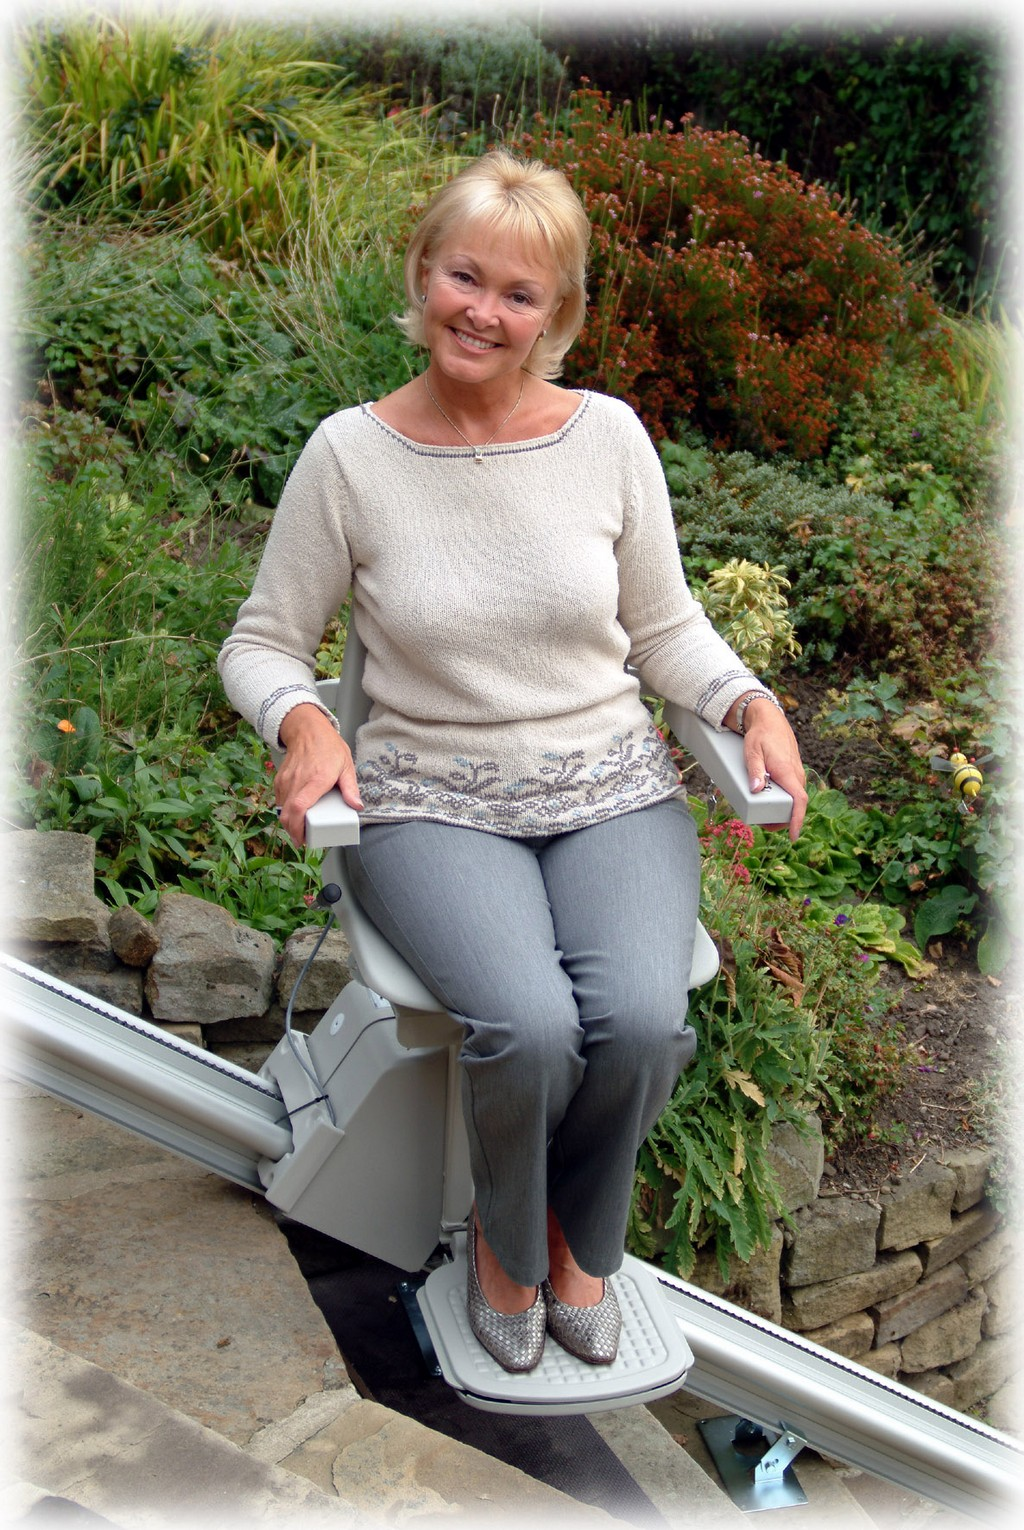 stannah stair lifts prices, stair lift rentals, stair lifts for disabled, stairlift sales in southwest michigan